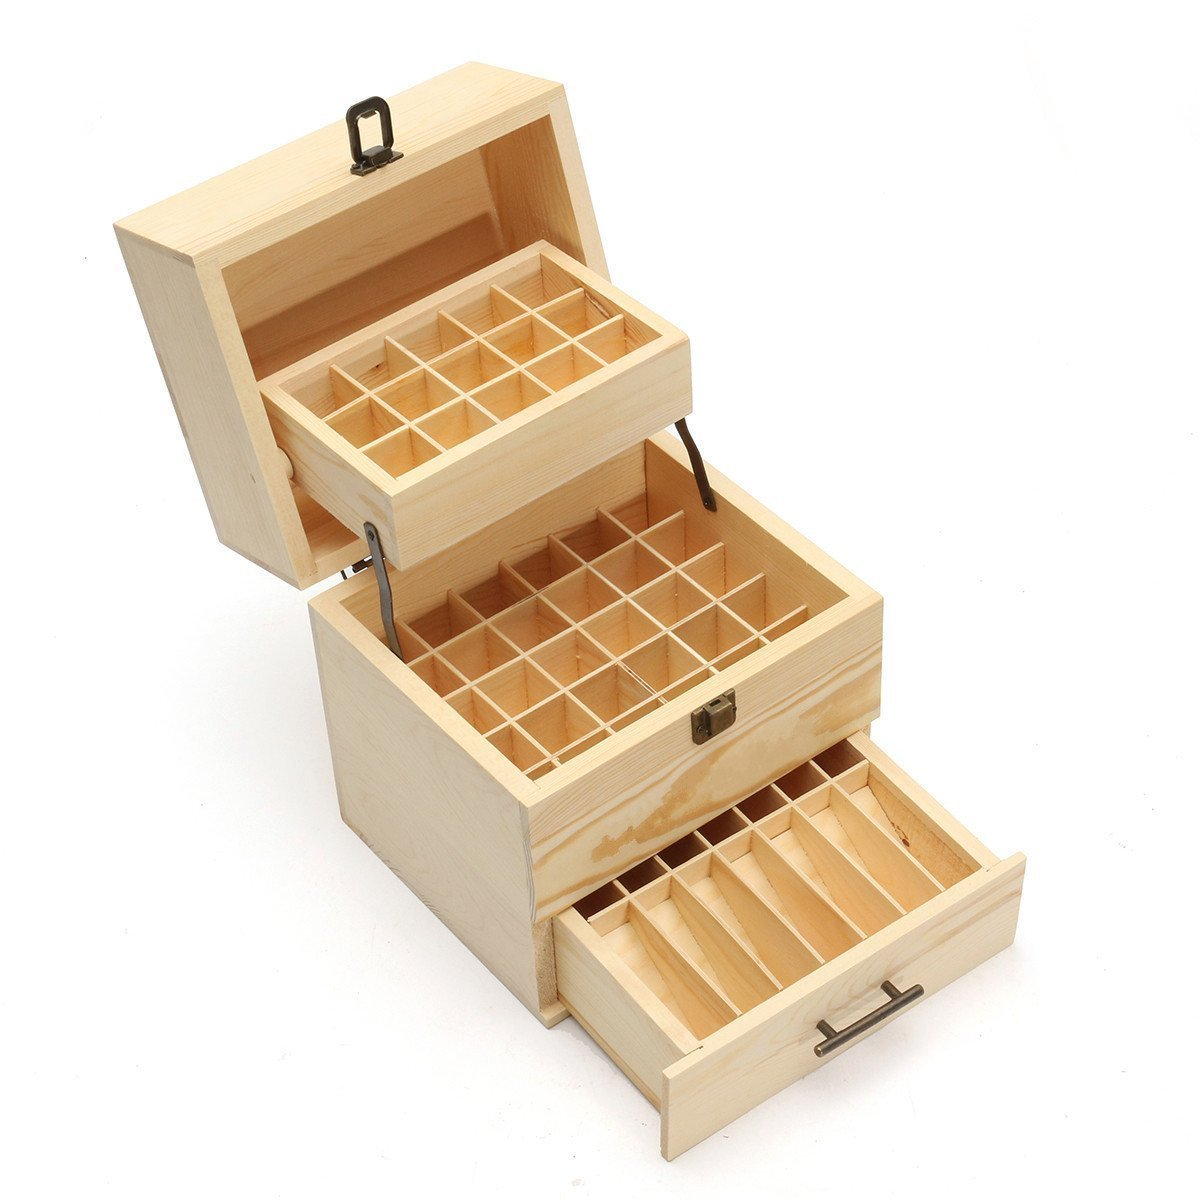 Storage Ideas For Essential Oils: 3 Top Tips For Storing Essential Oils